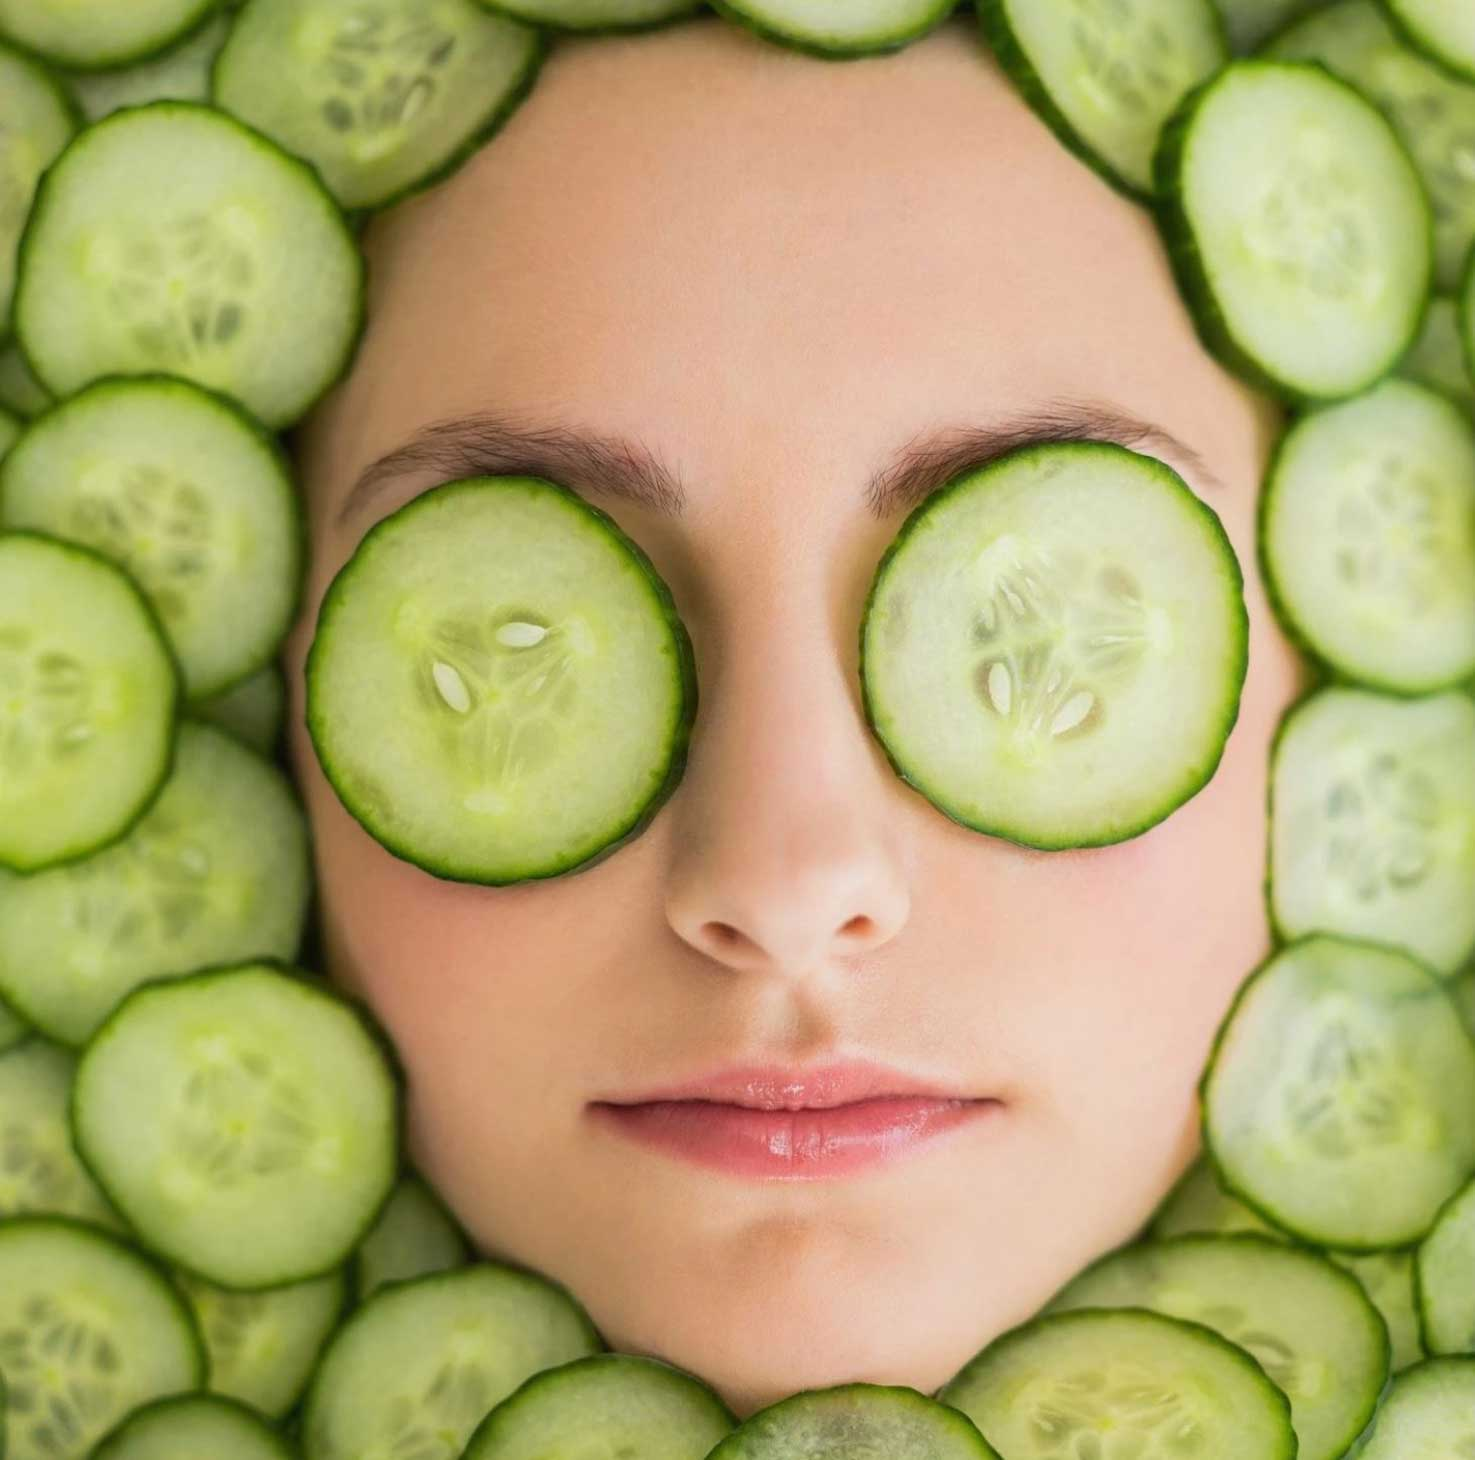 How to maintain healthy skin?